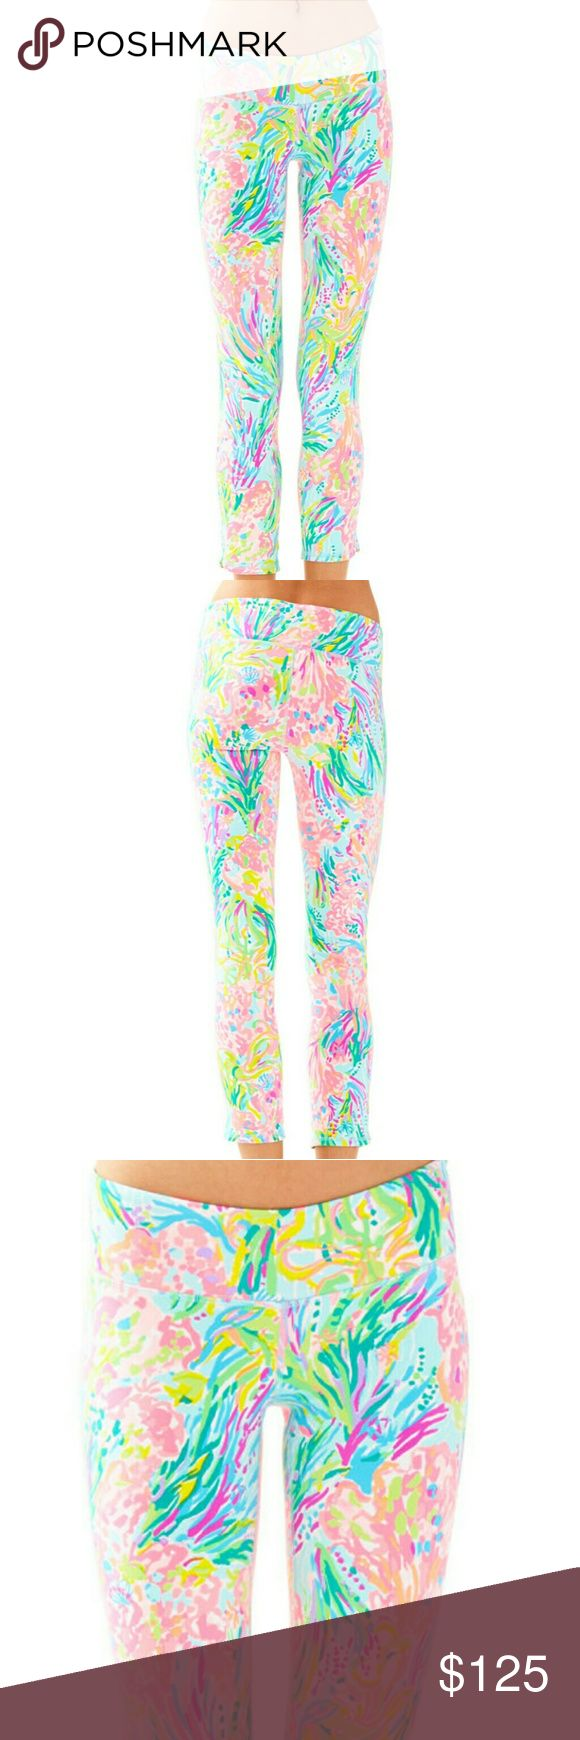 NWT LILLY PULITZER LUXLETIC CROPPED LEGGINGS L New with tags Too big for me that's why I'm selling them Way brighter in person than the stock pics ! Size large Multi fan sea print Cropped PRICE IS FIRM  PRICE IS FIRM  NO TRADES Lilly Pulitzer Pants Leggings